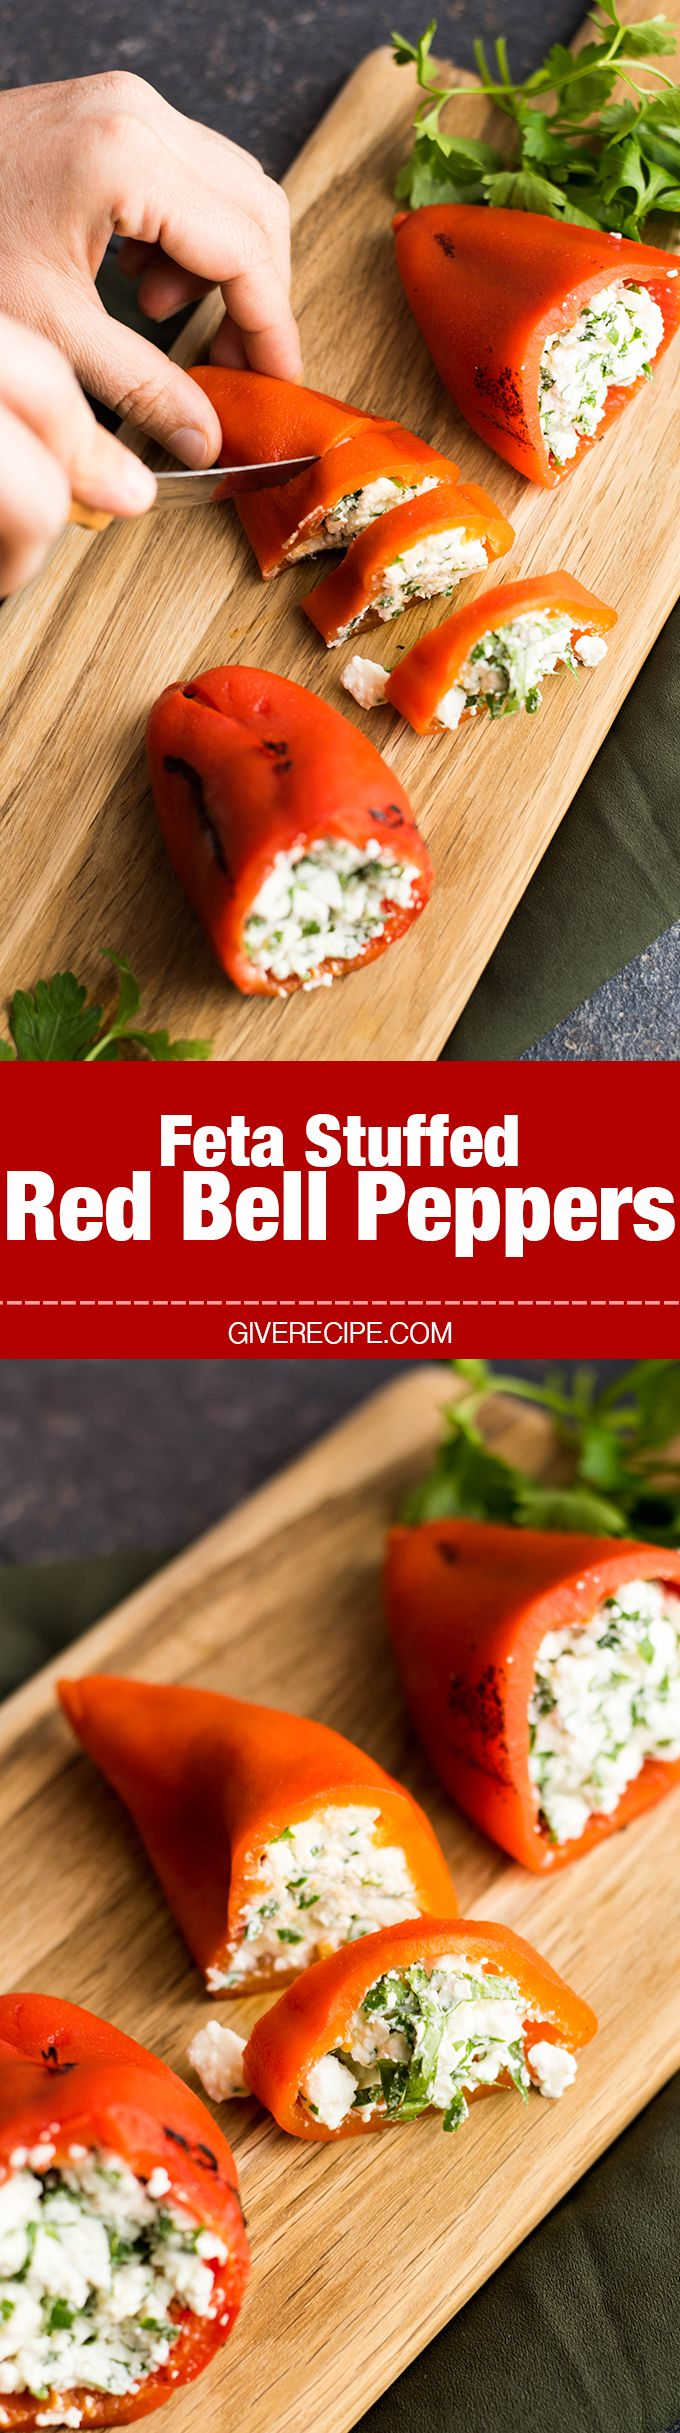 Roasted red bell peppers are stuffed with a mixture of feta, Greek yogurt, garlic and parsley. This would be amazing with poblano peppers, too!